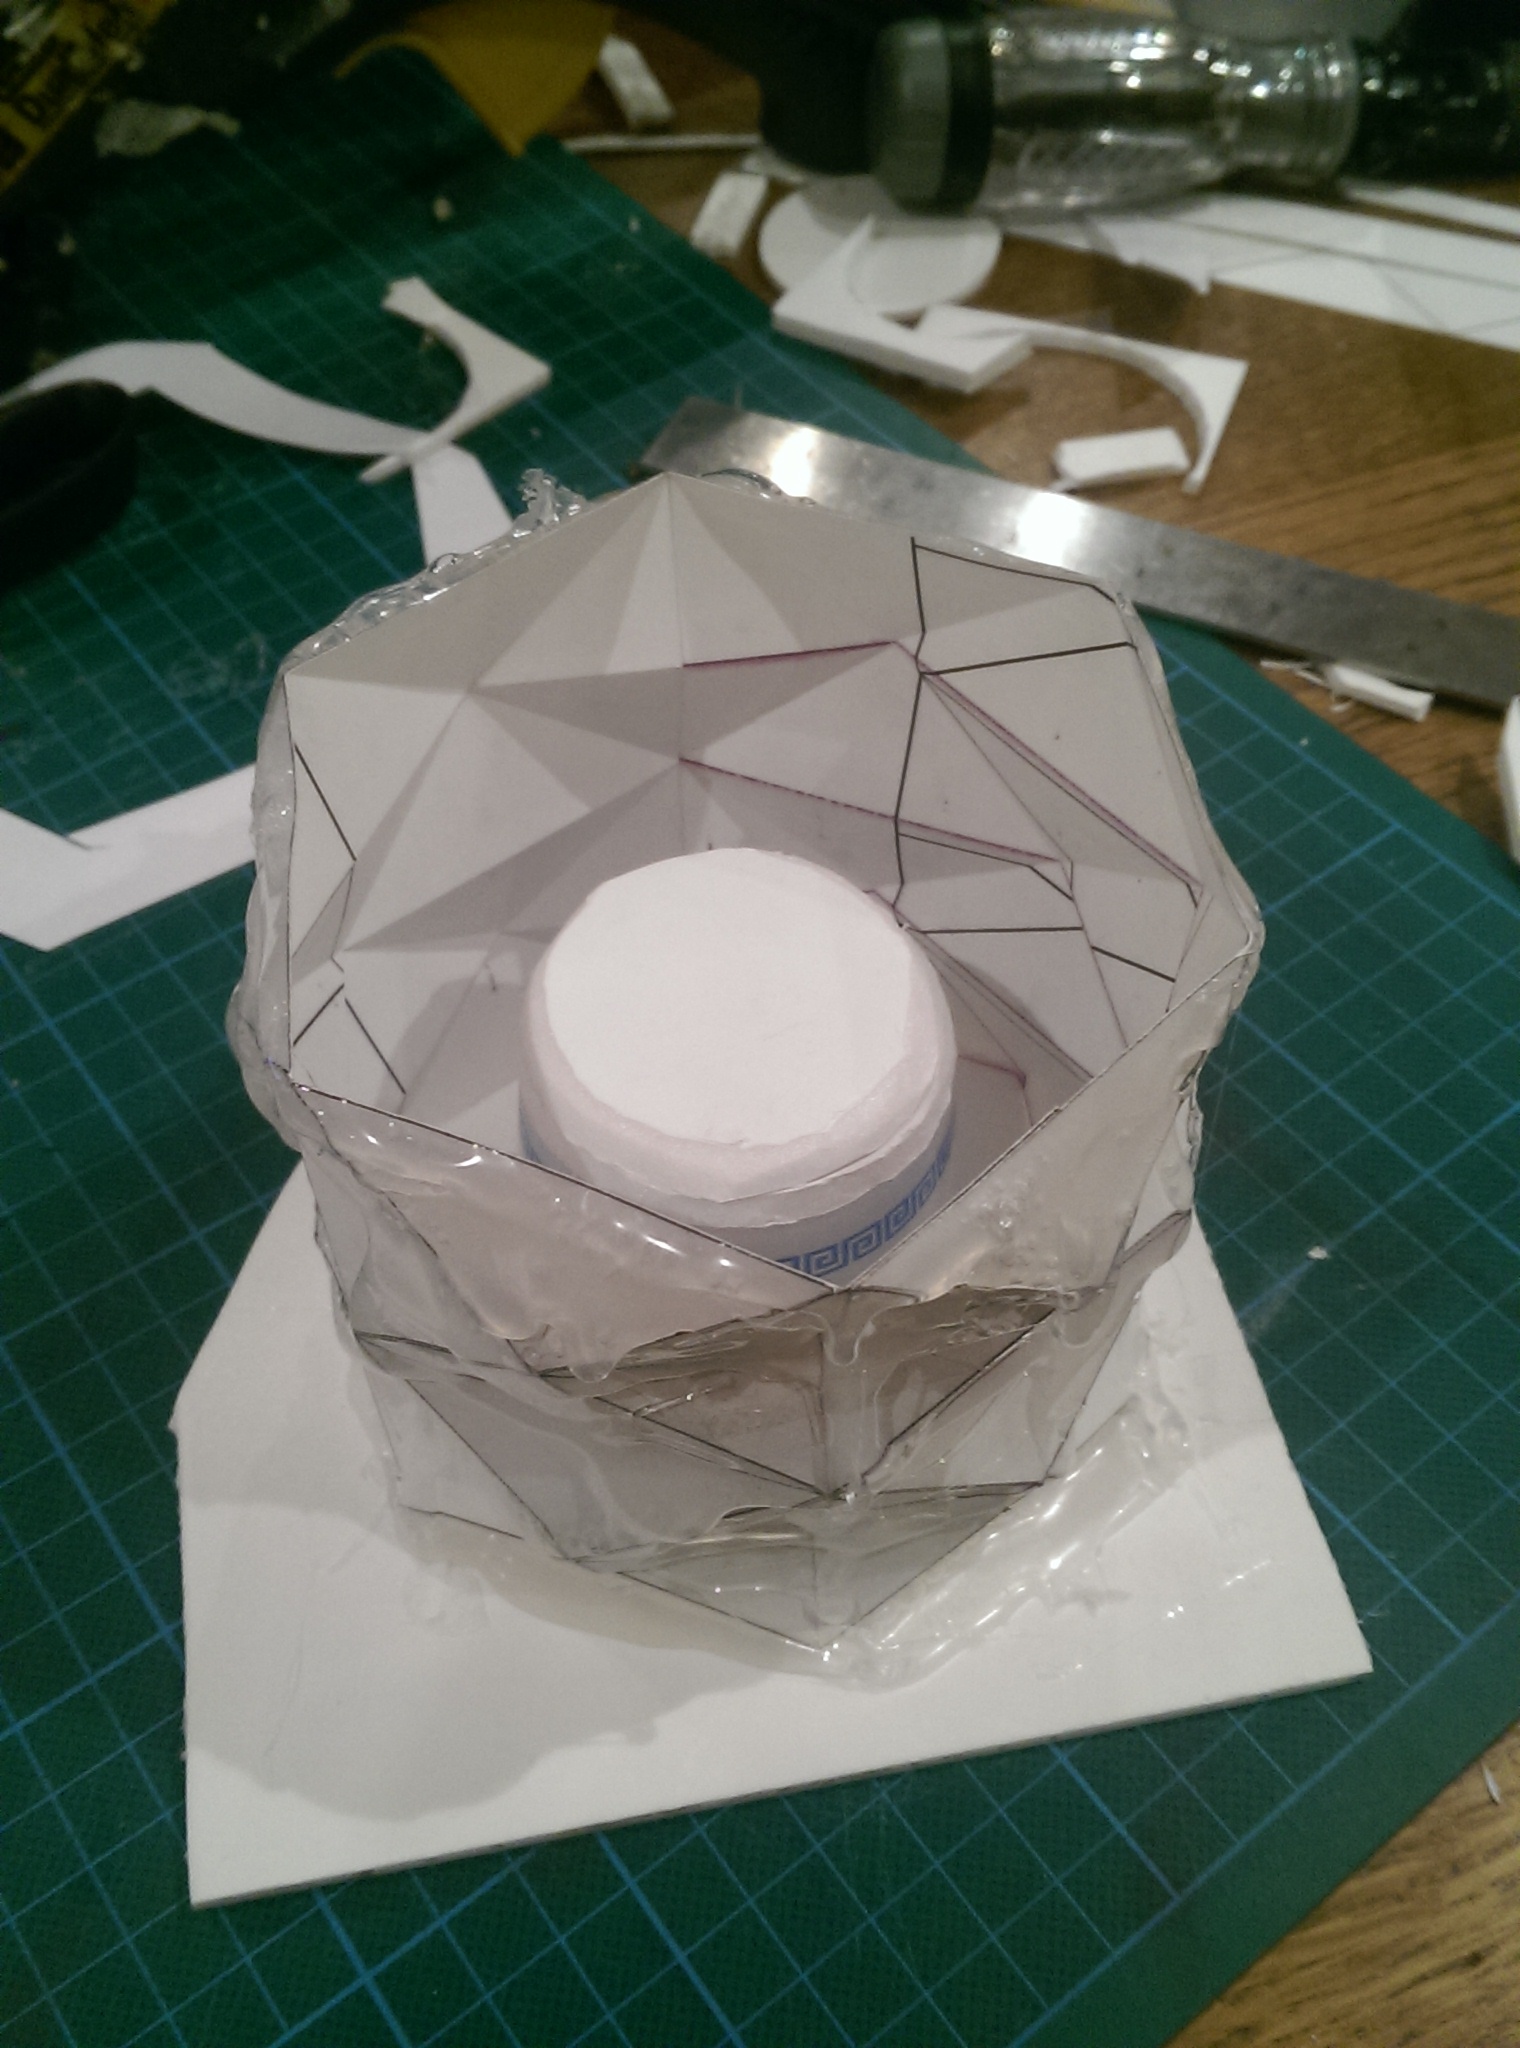 ⬆  - Thick card was folded into the desired pattern and reinforced with hot glue. A plastic pot with draft creates the hollow in the pot.